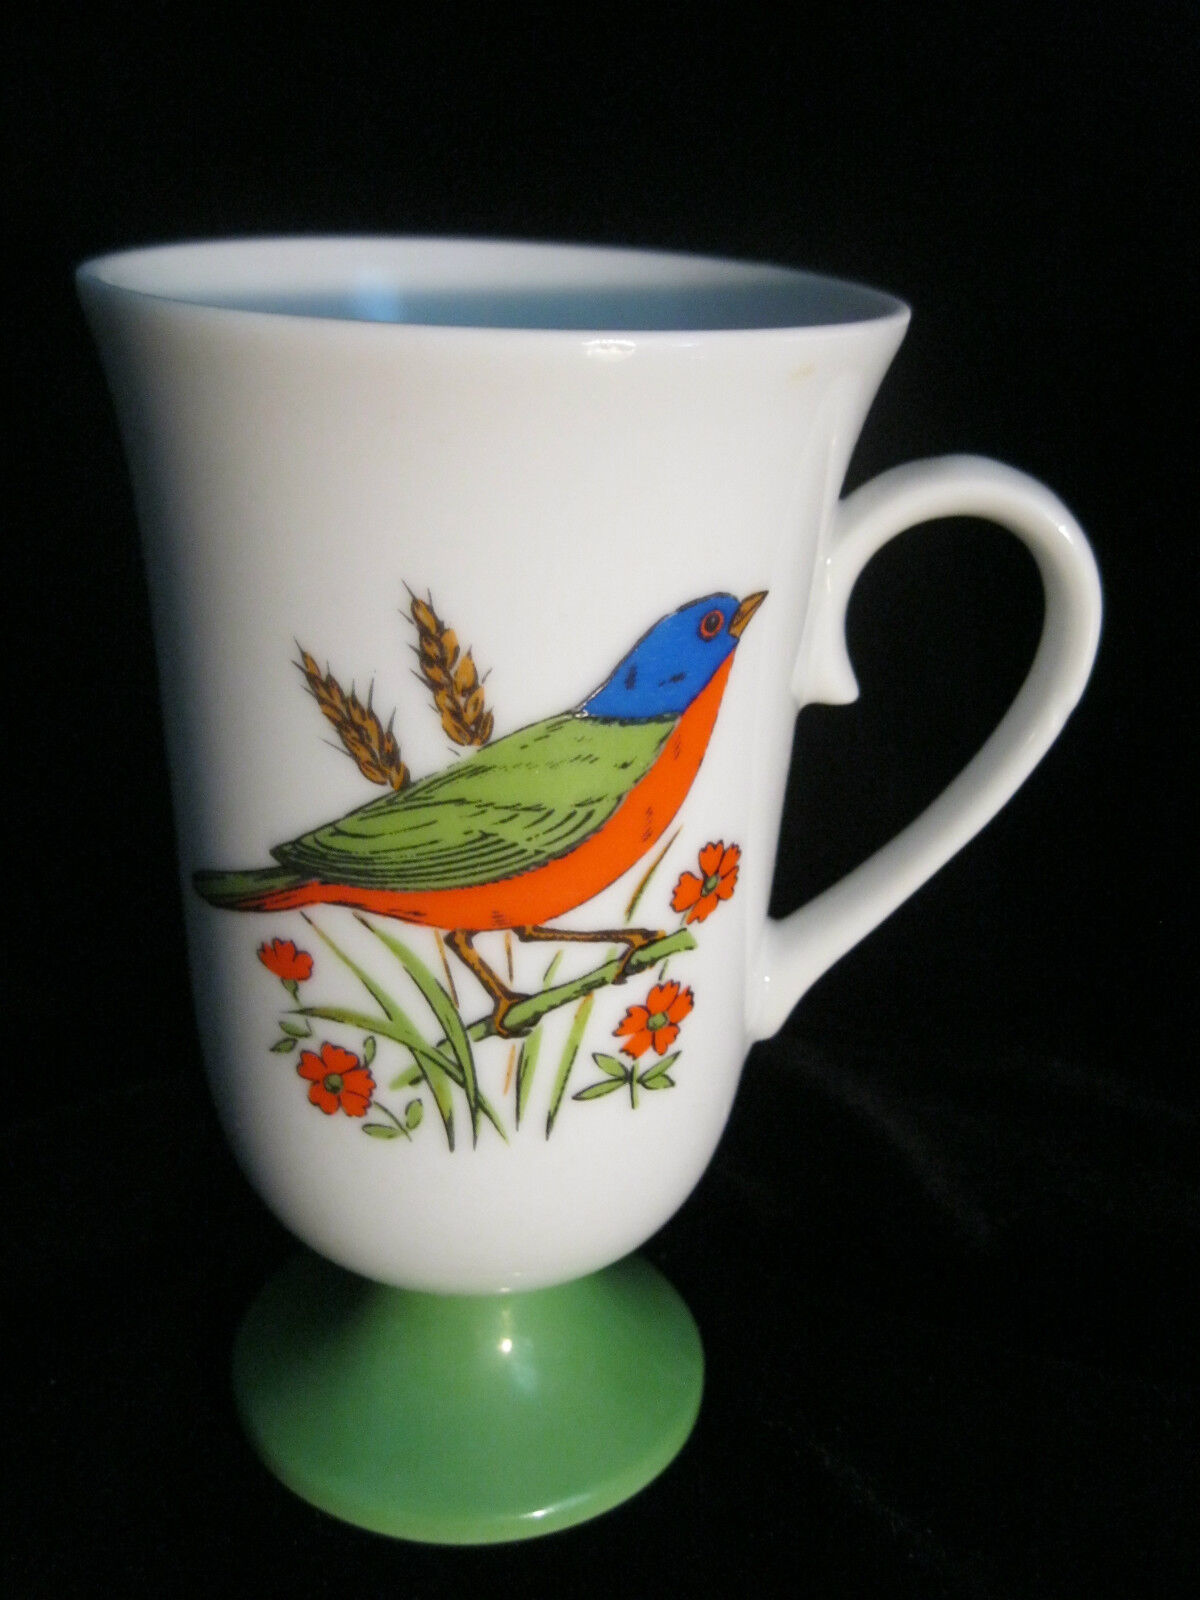 SET 4 DECORATIVE FOOTED MUGS WITH BIRD MOTIF - MADE IN JAPAN